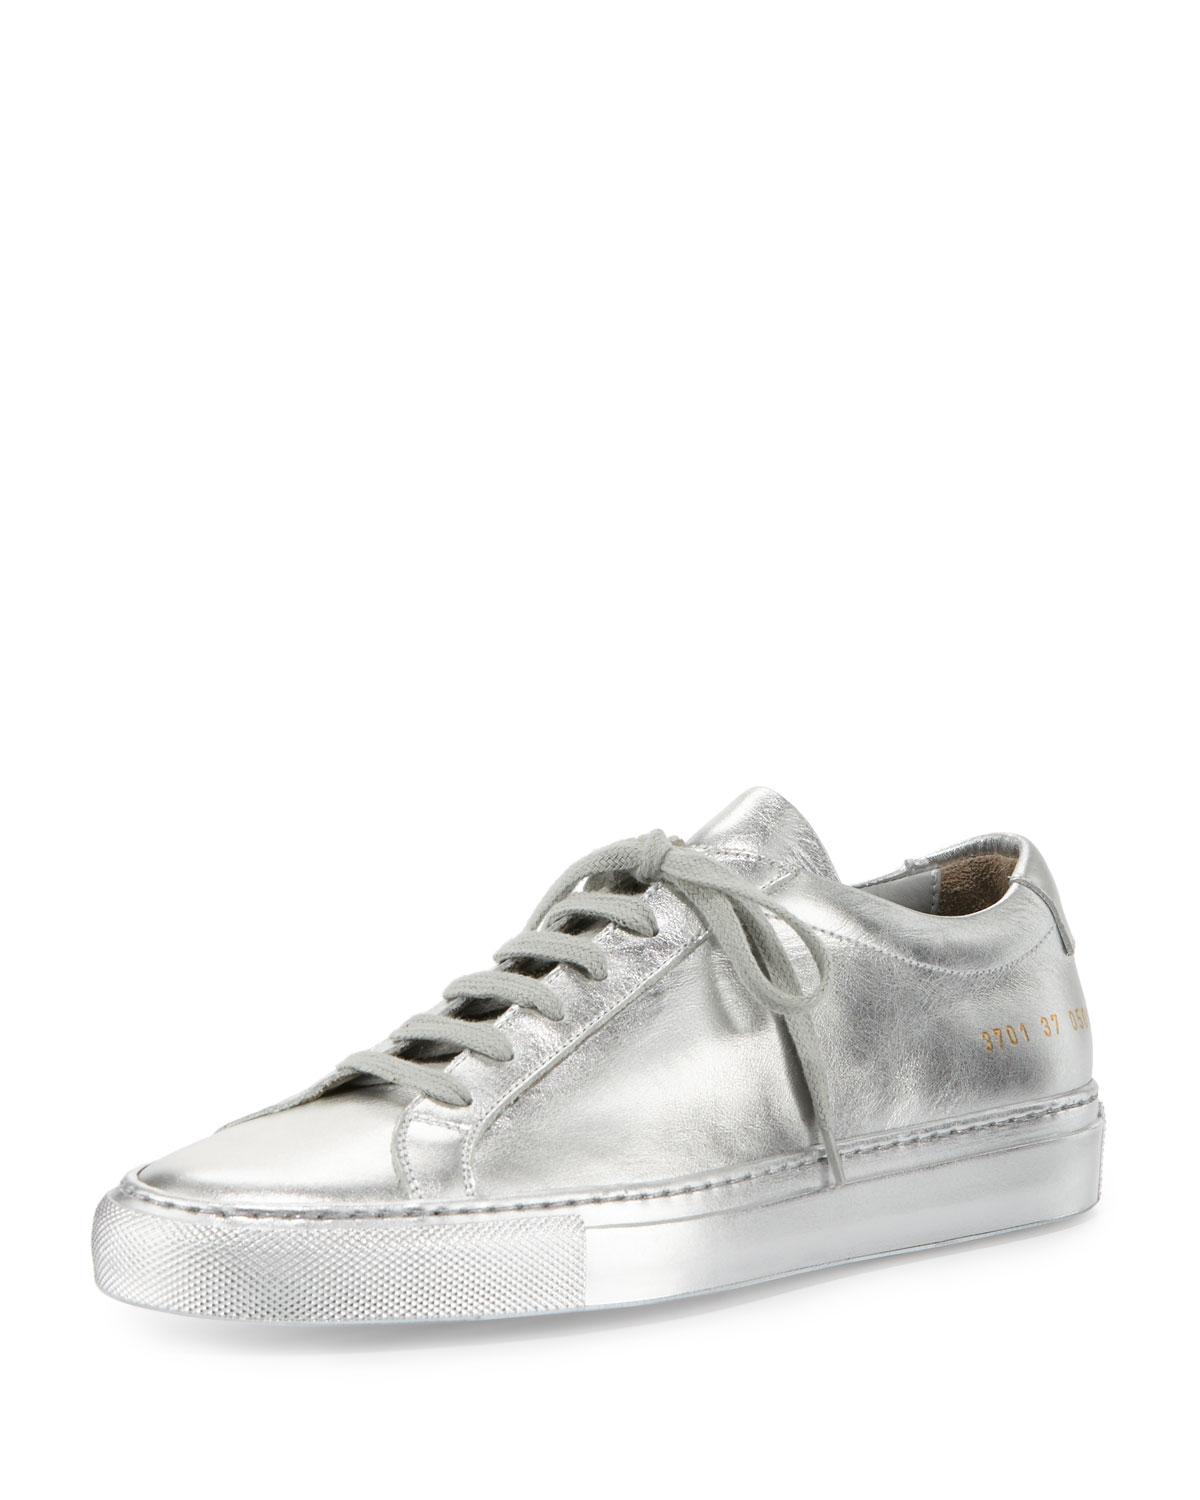 Common Projects Achilles Leather Low-Top Sneaker, Silver, Women's, Size: 34.0B/4.0B